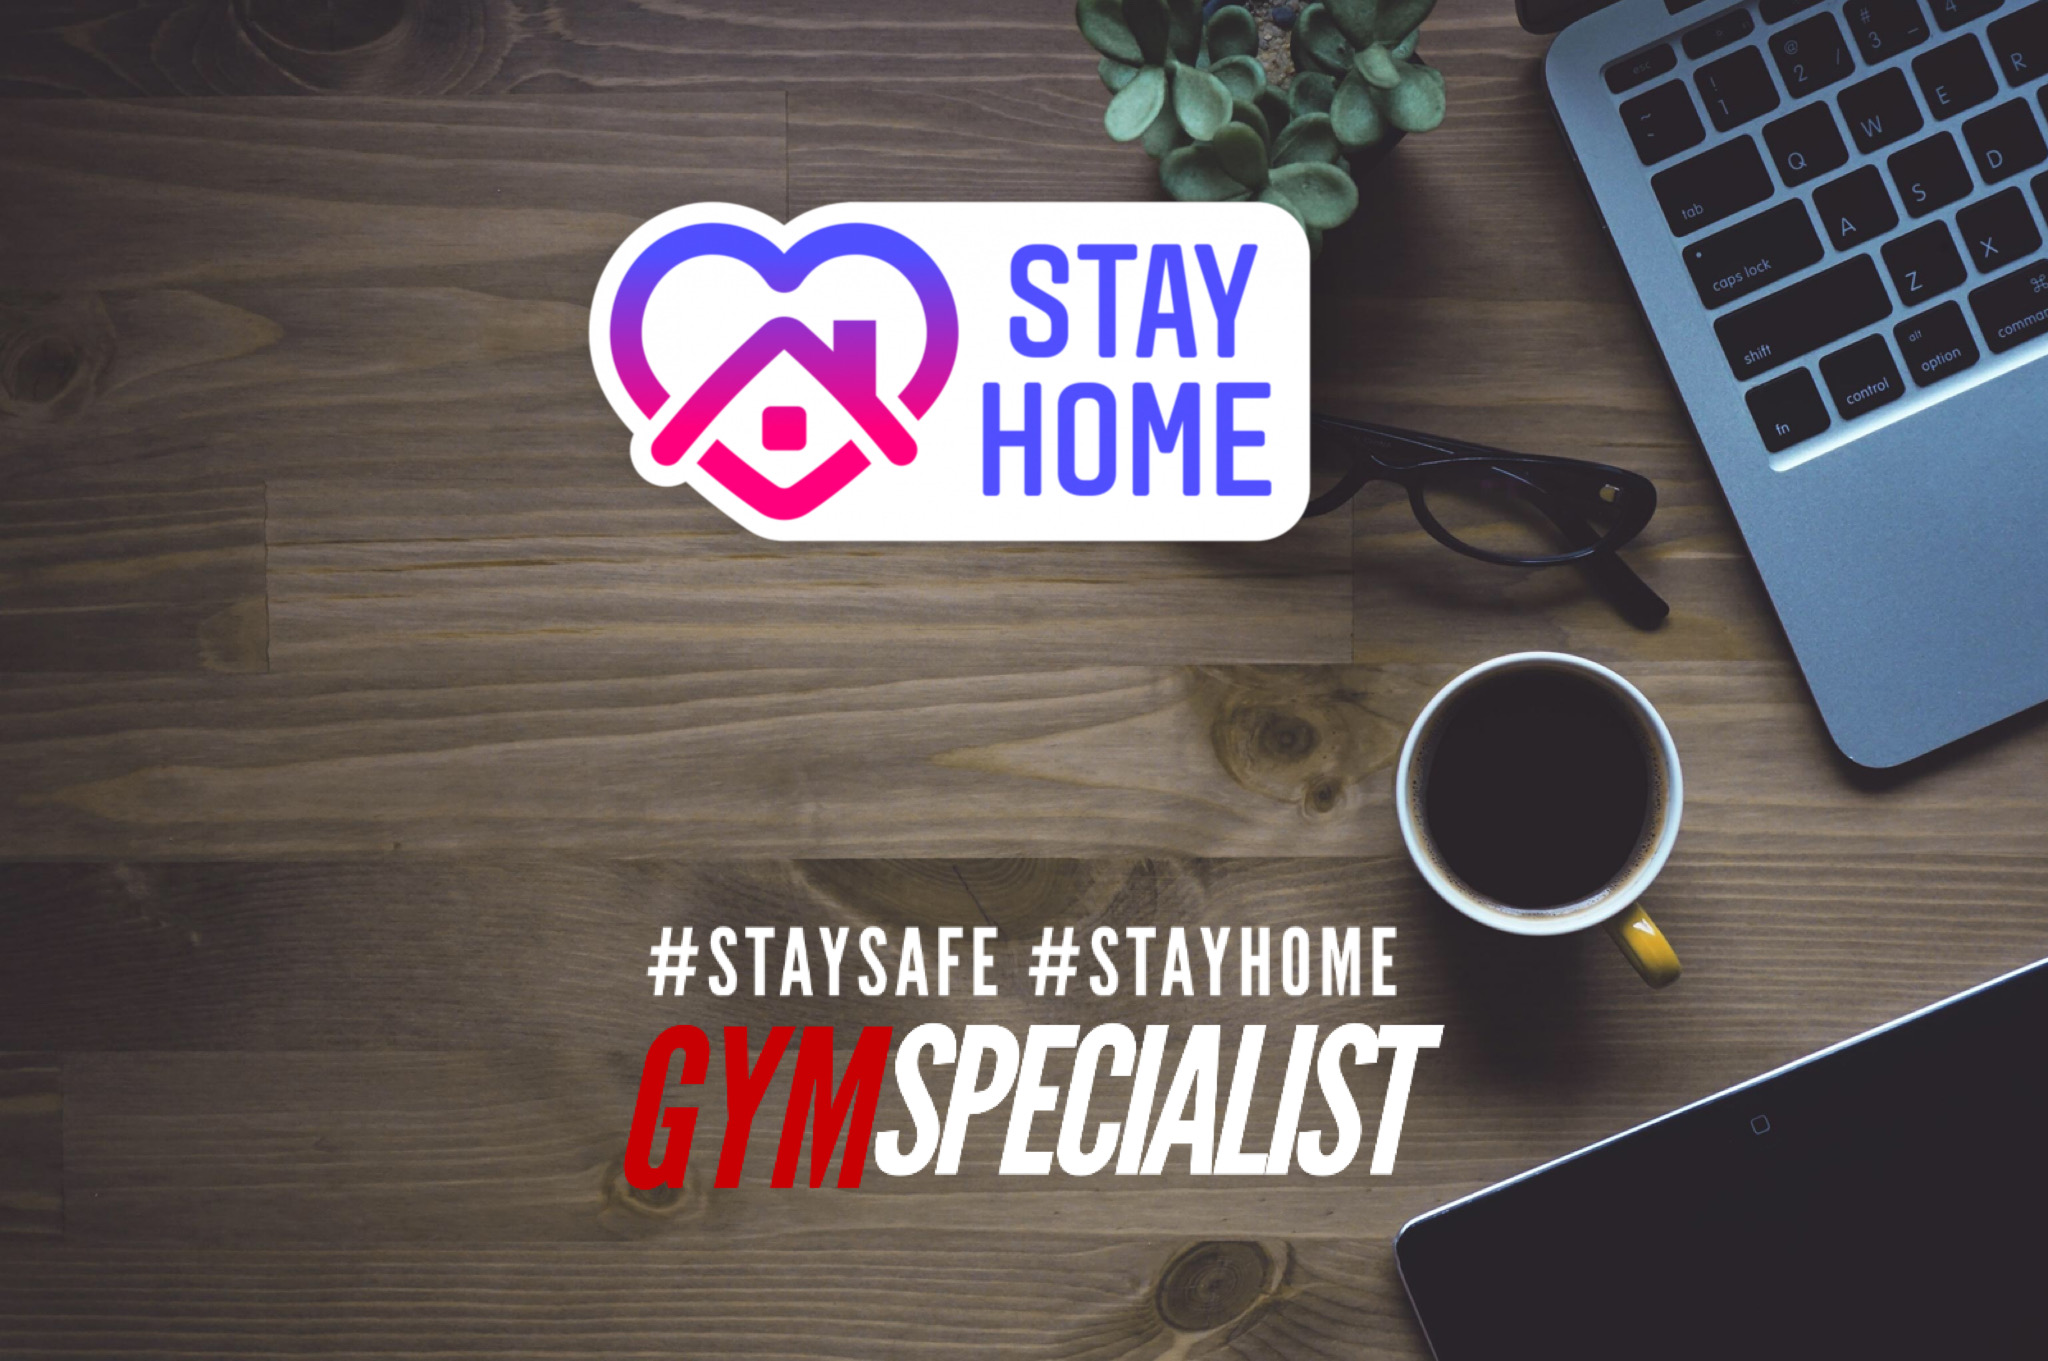 GS- Gymspecialist |